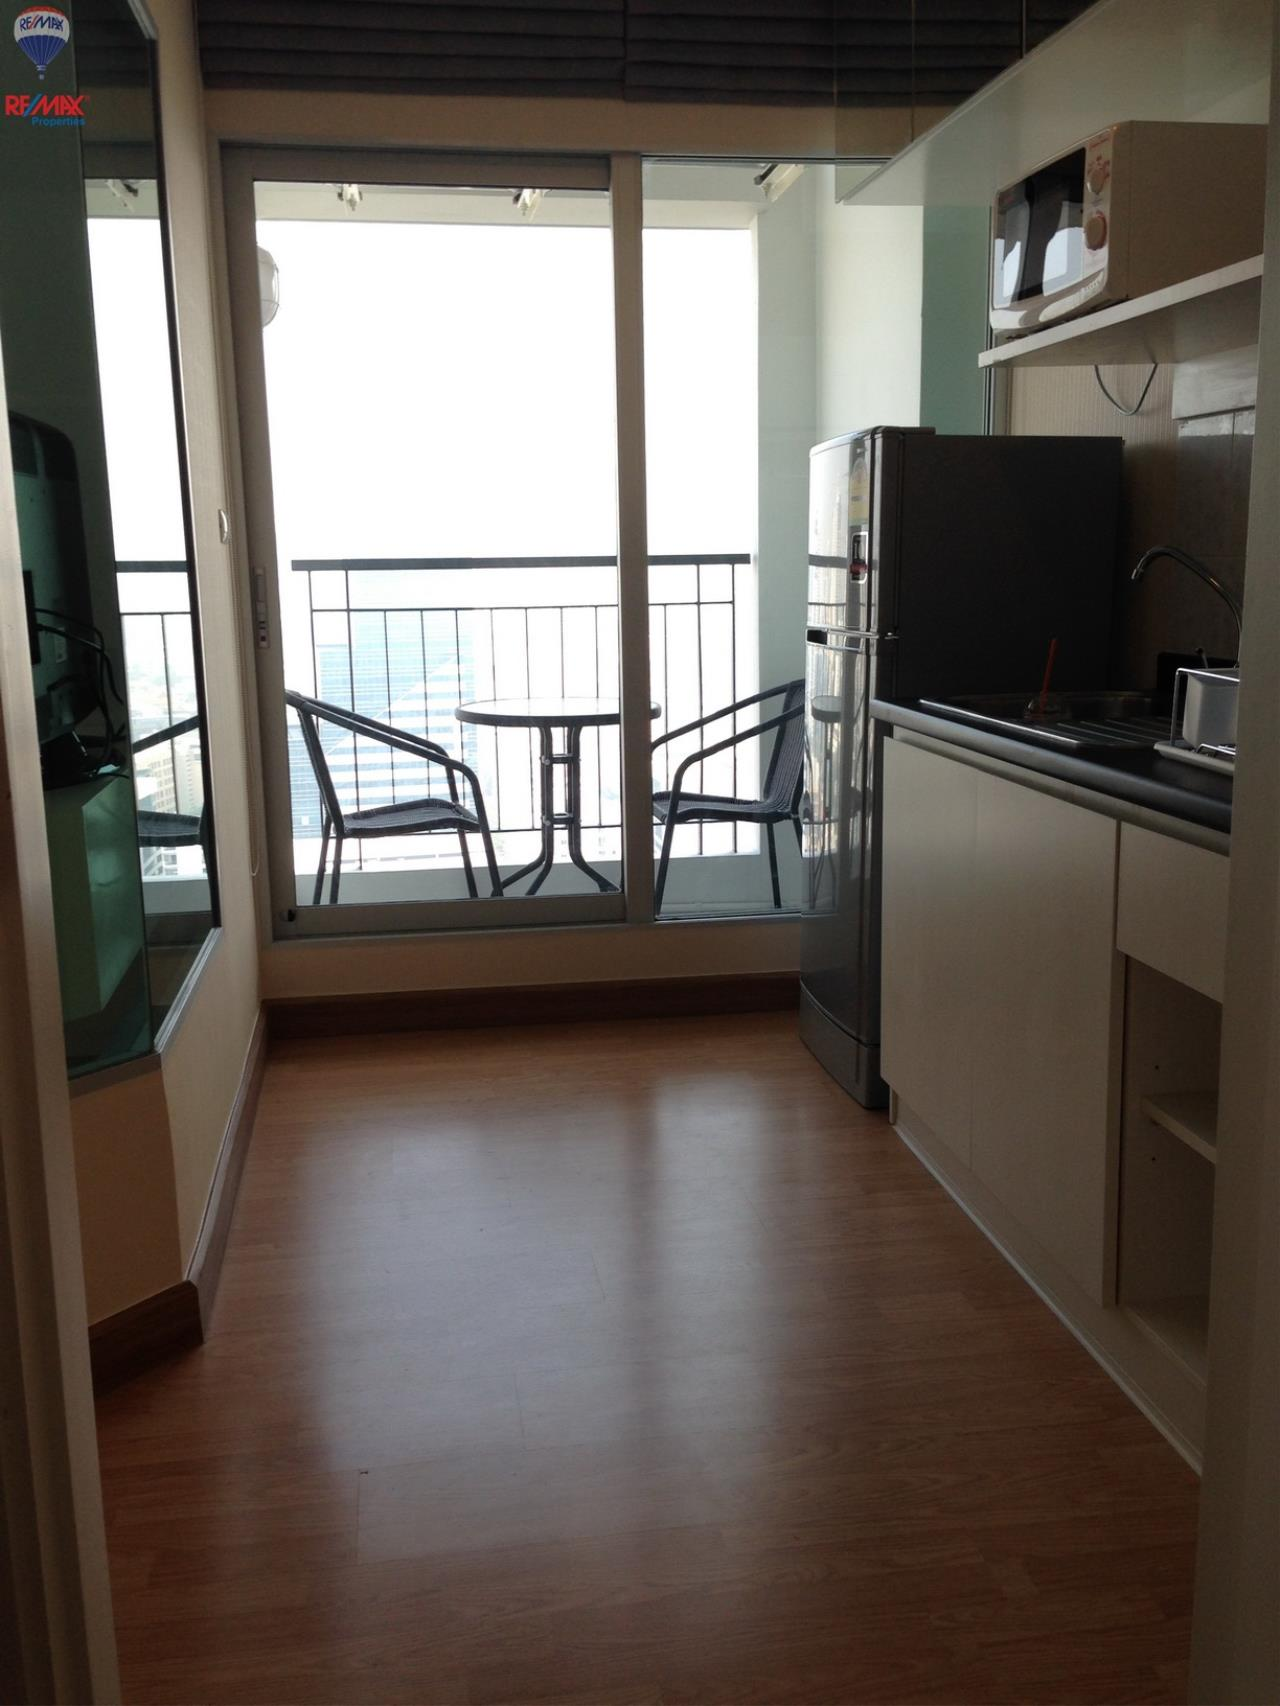 RE/MAX Properties Agency's Condo for rent Sukhumvit - Rama 4 14